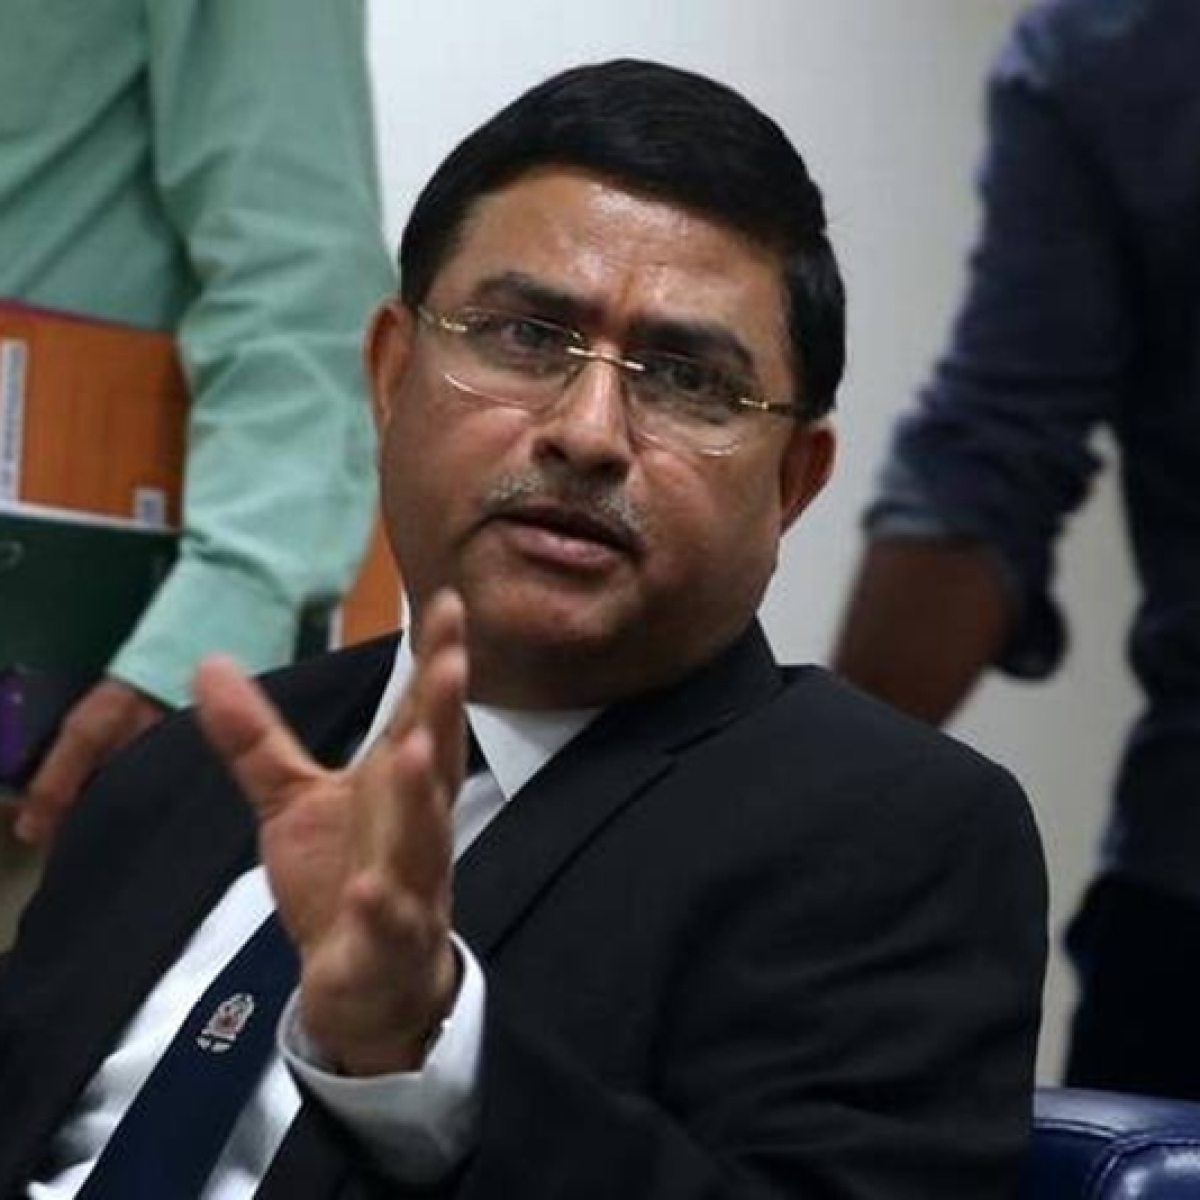 Former CBI Special Director Rakesh Asthana likely to get clean chit in corruption case